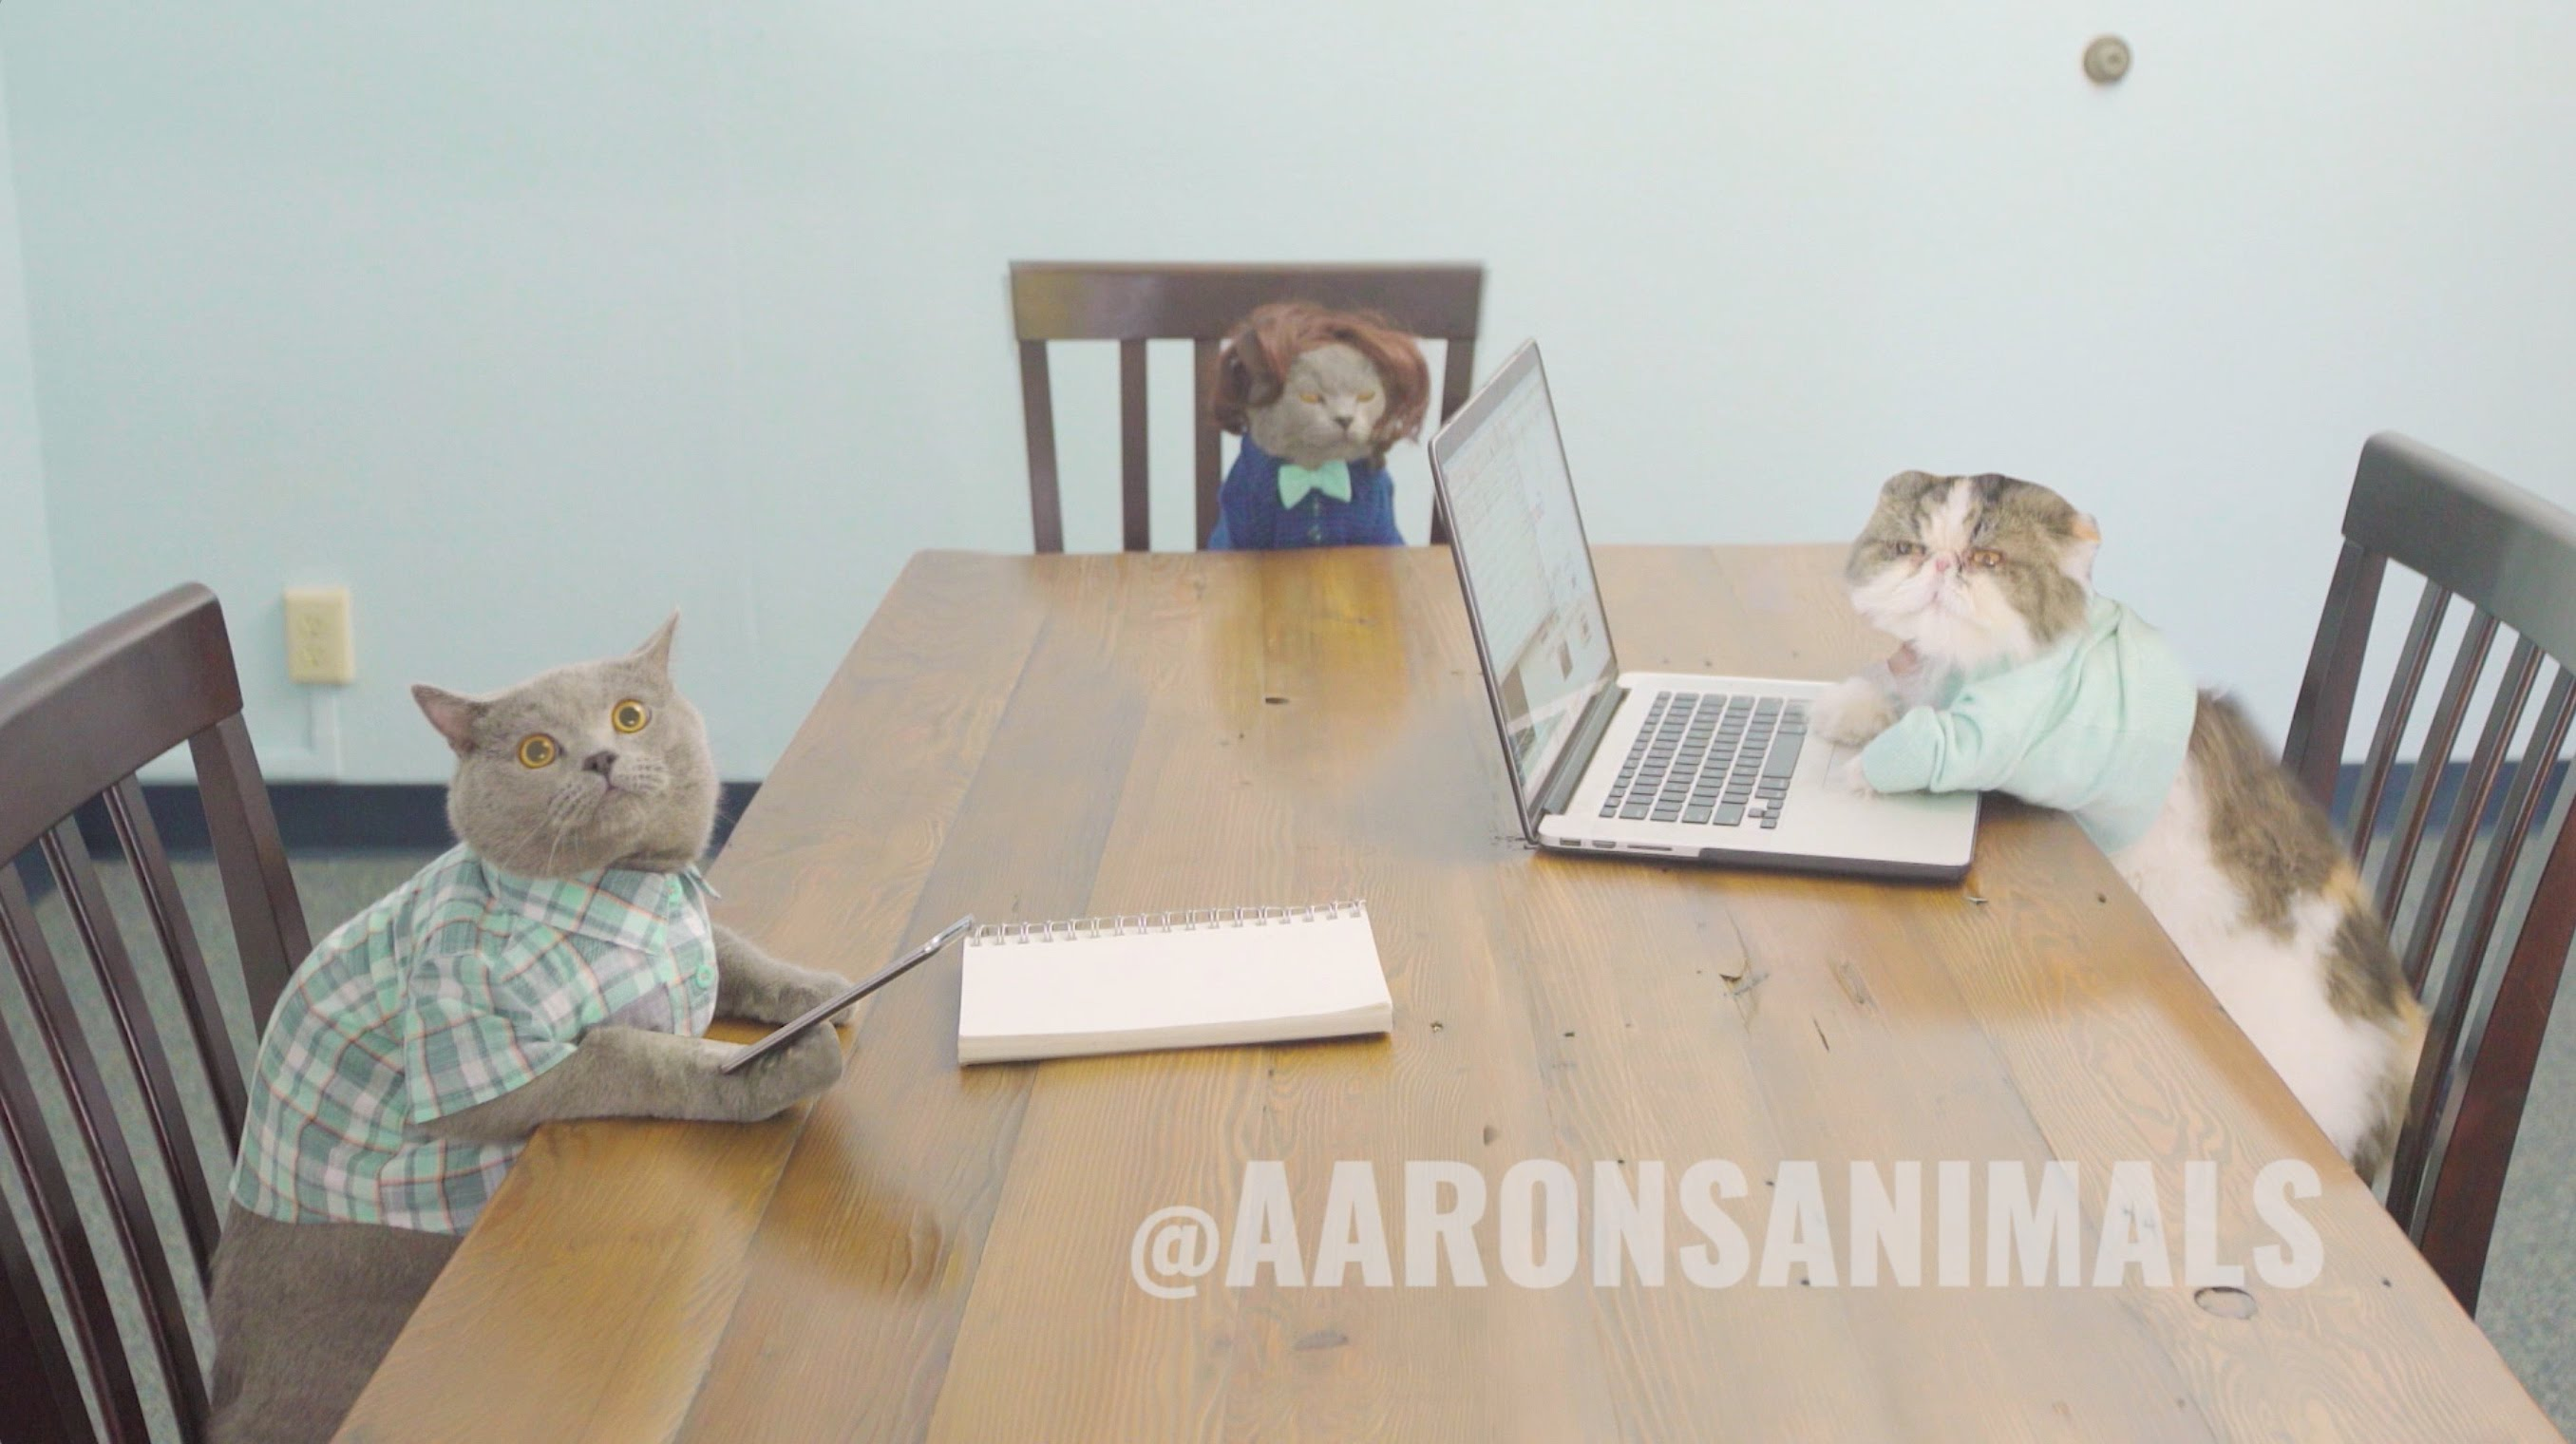 When cats have a meeting in the workplace - Aaron's Animals